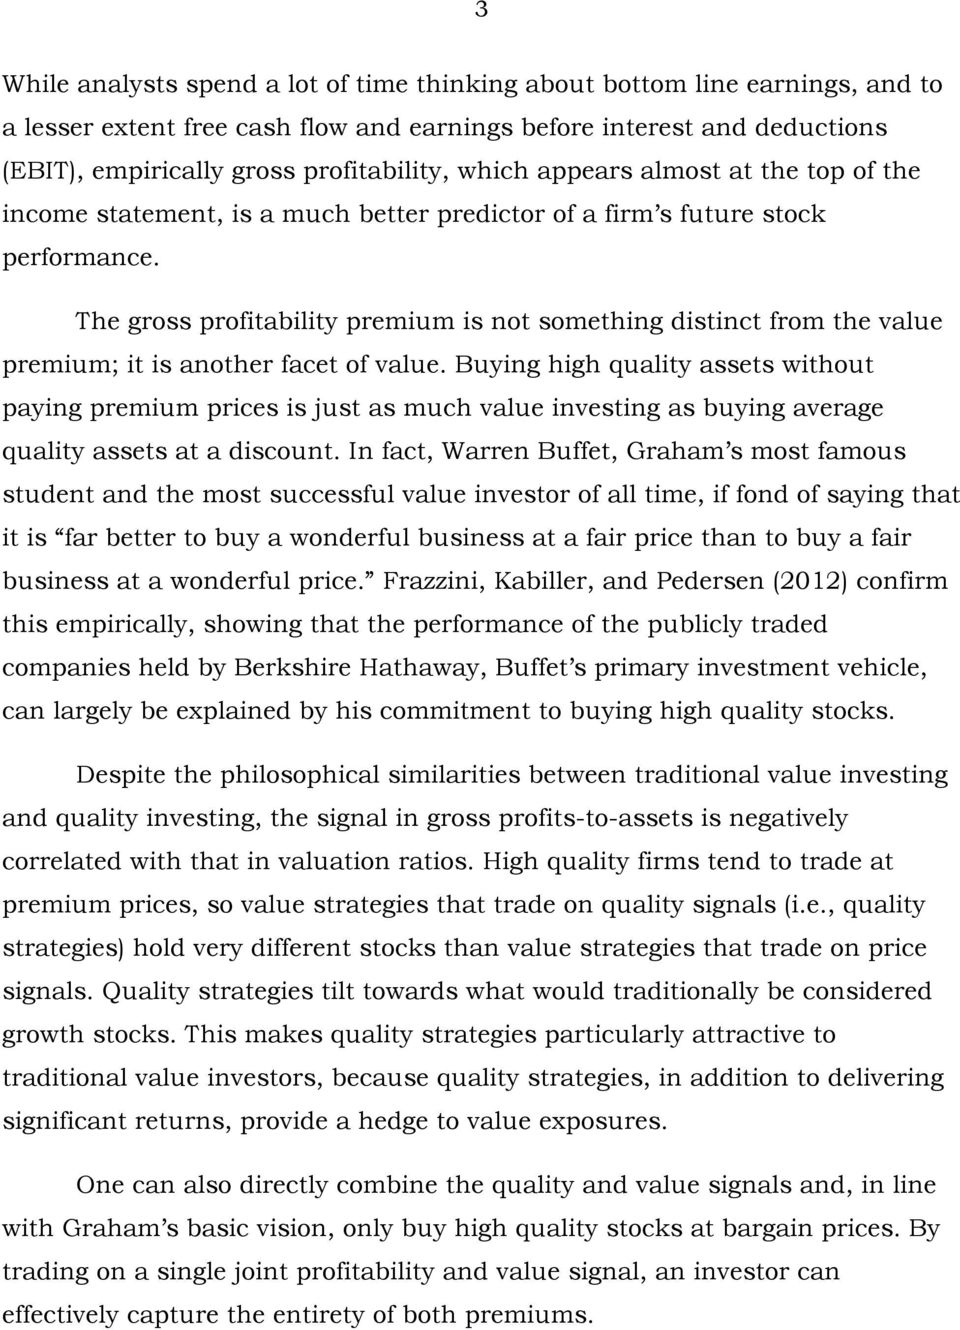 The gross profitability premium is not something distinct from the value premium; it is another facet of value.